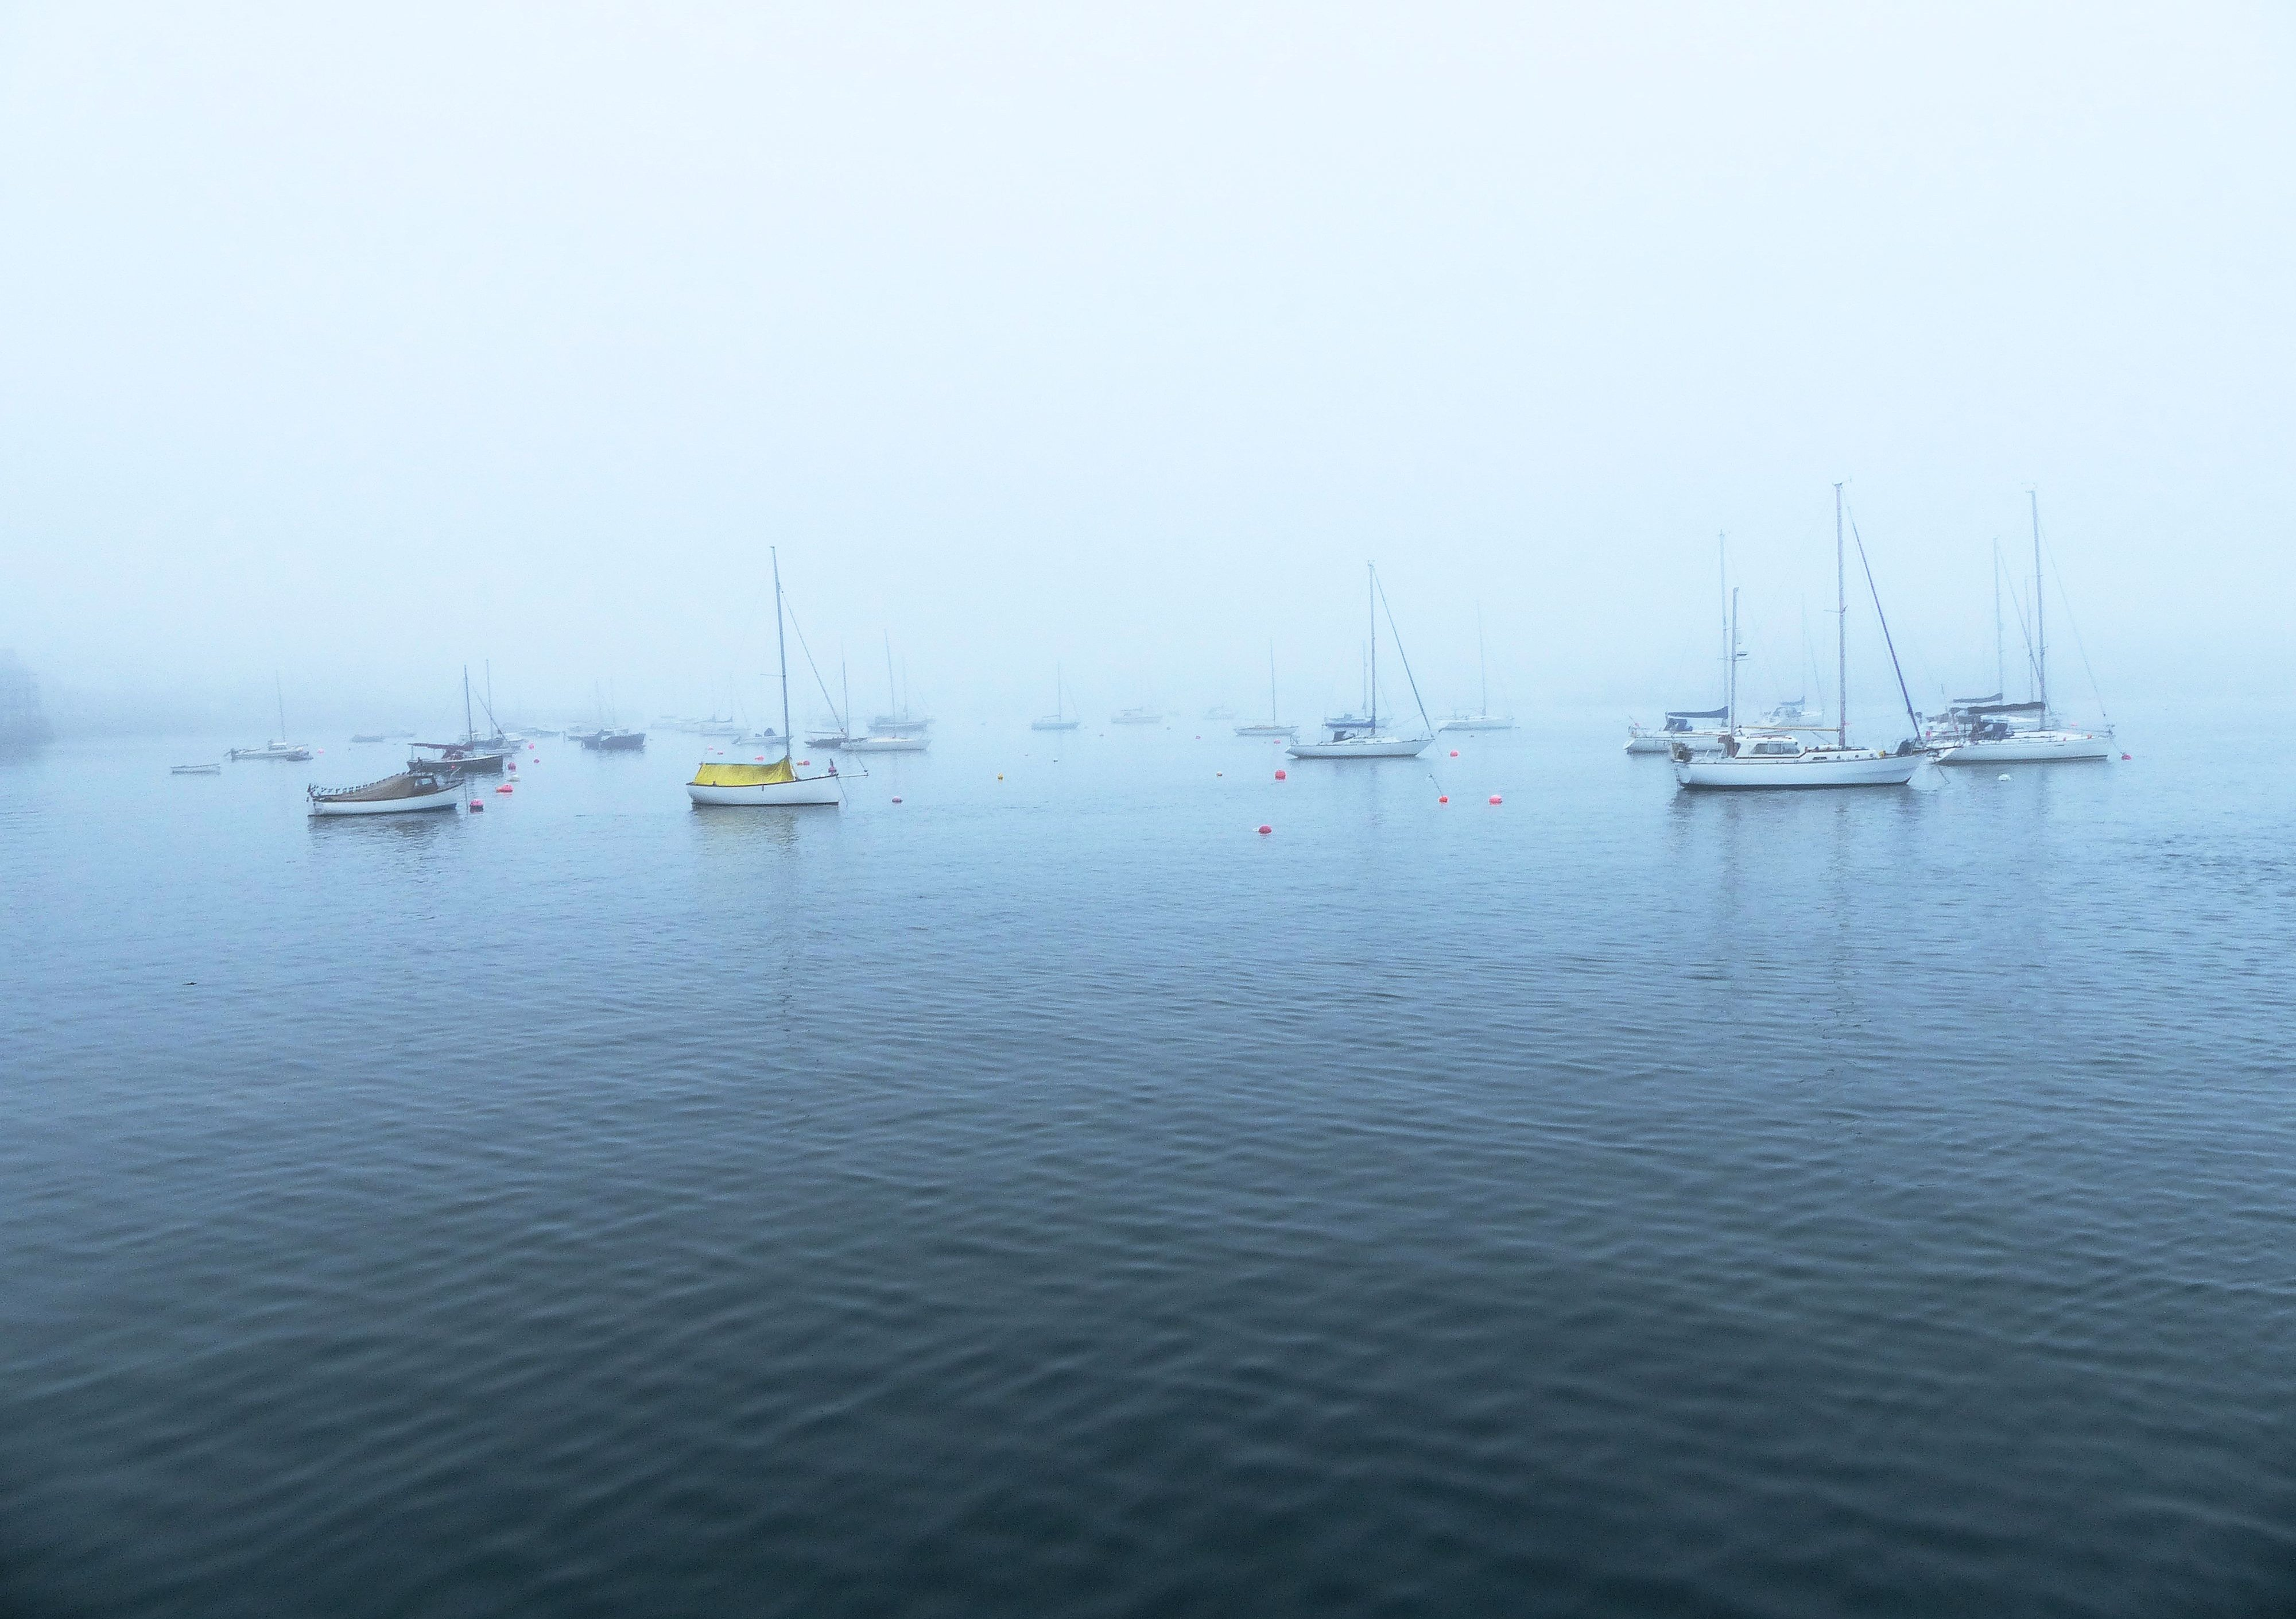 Mist boats